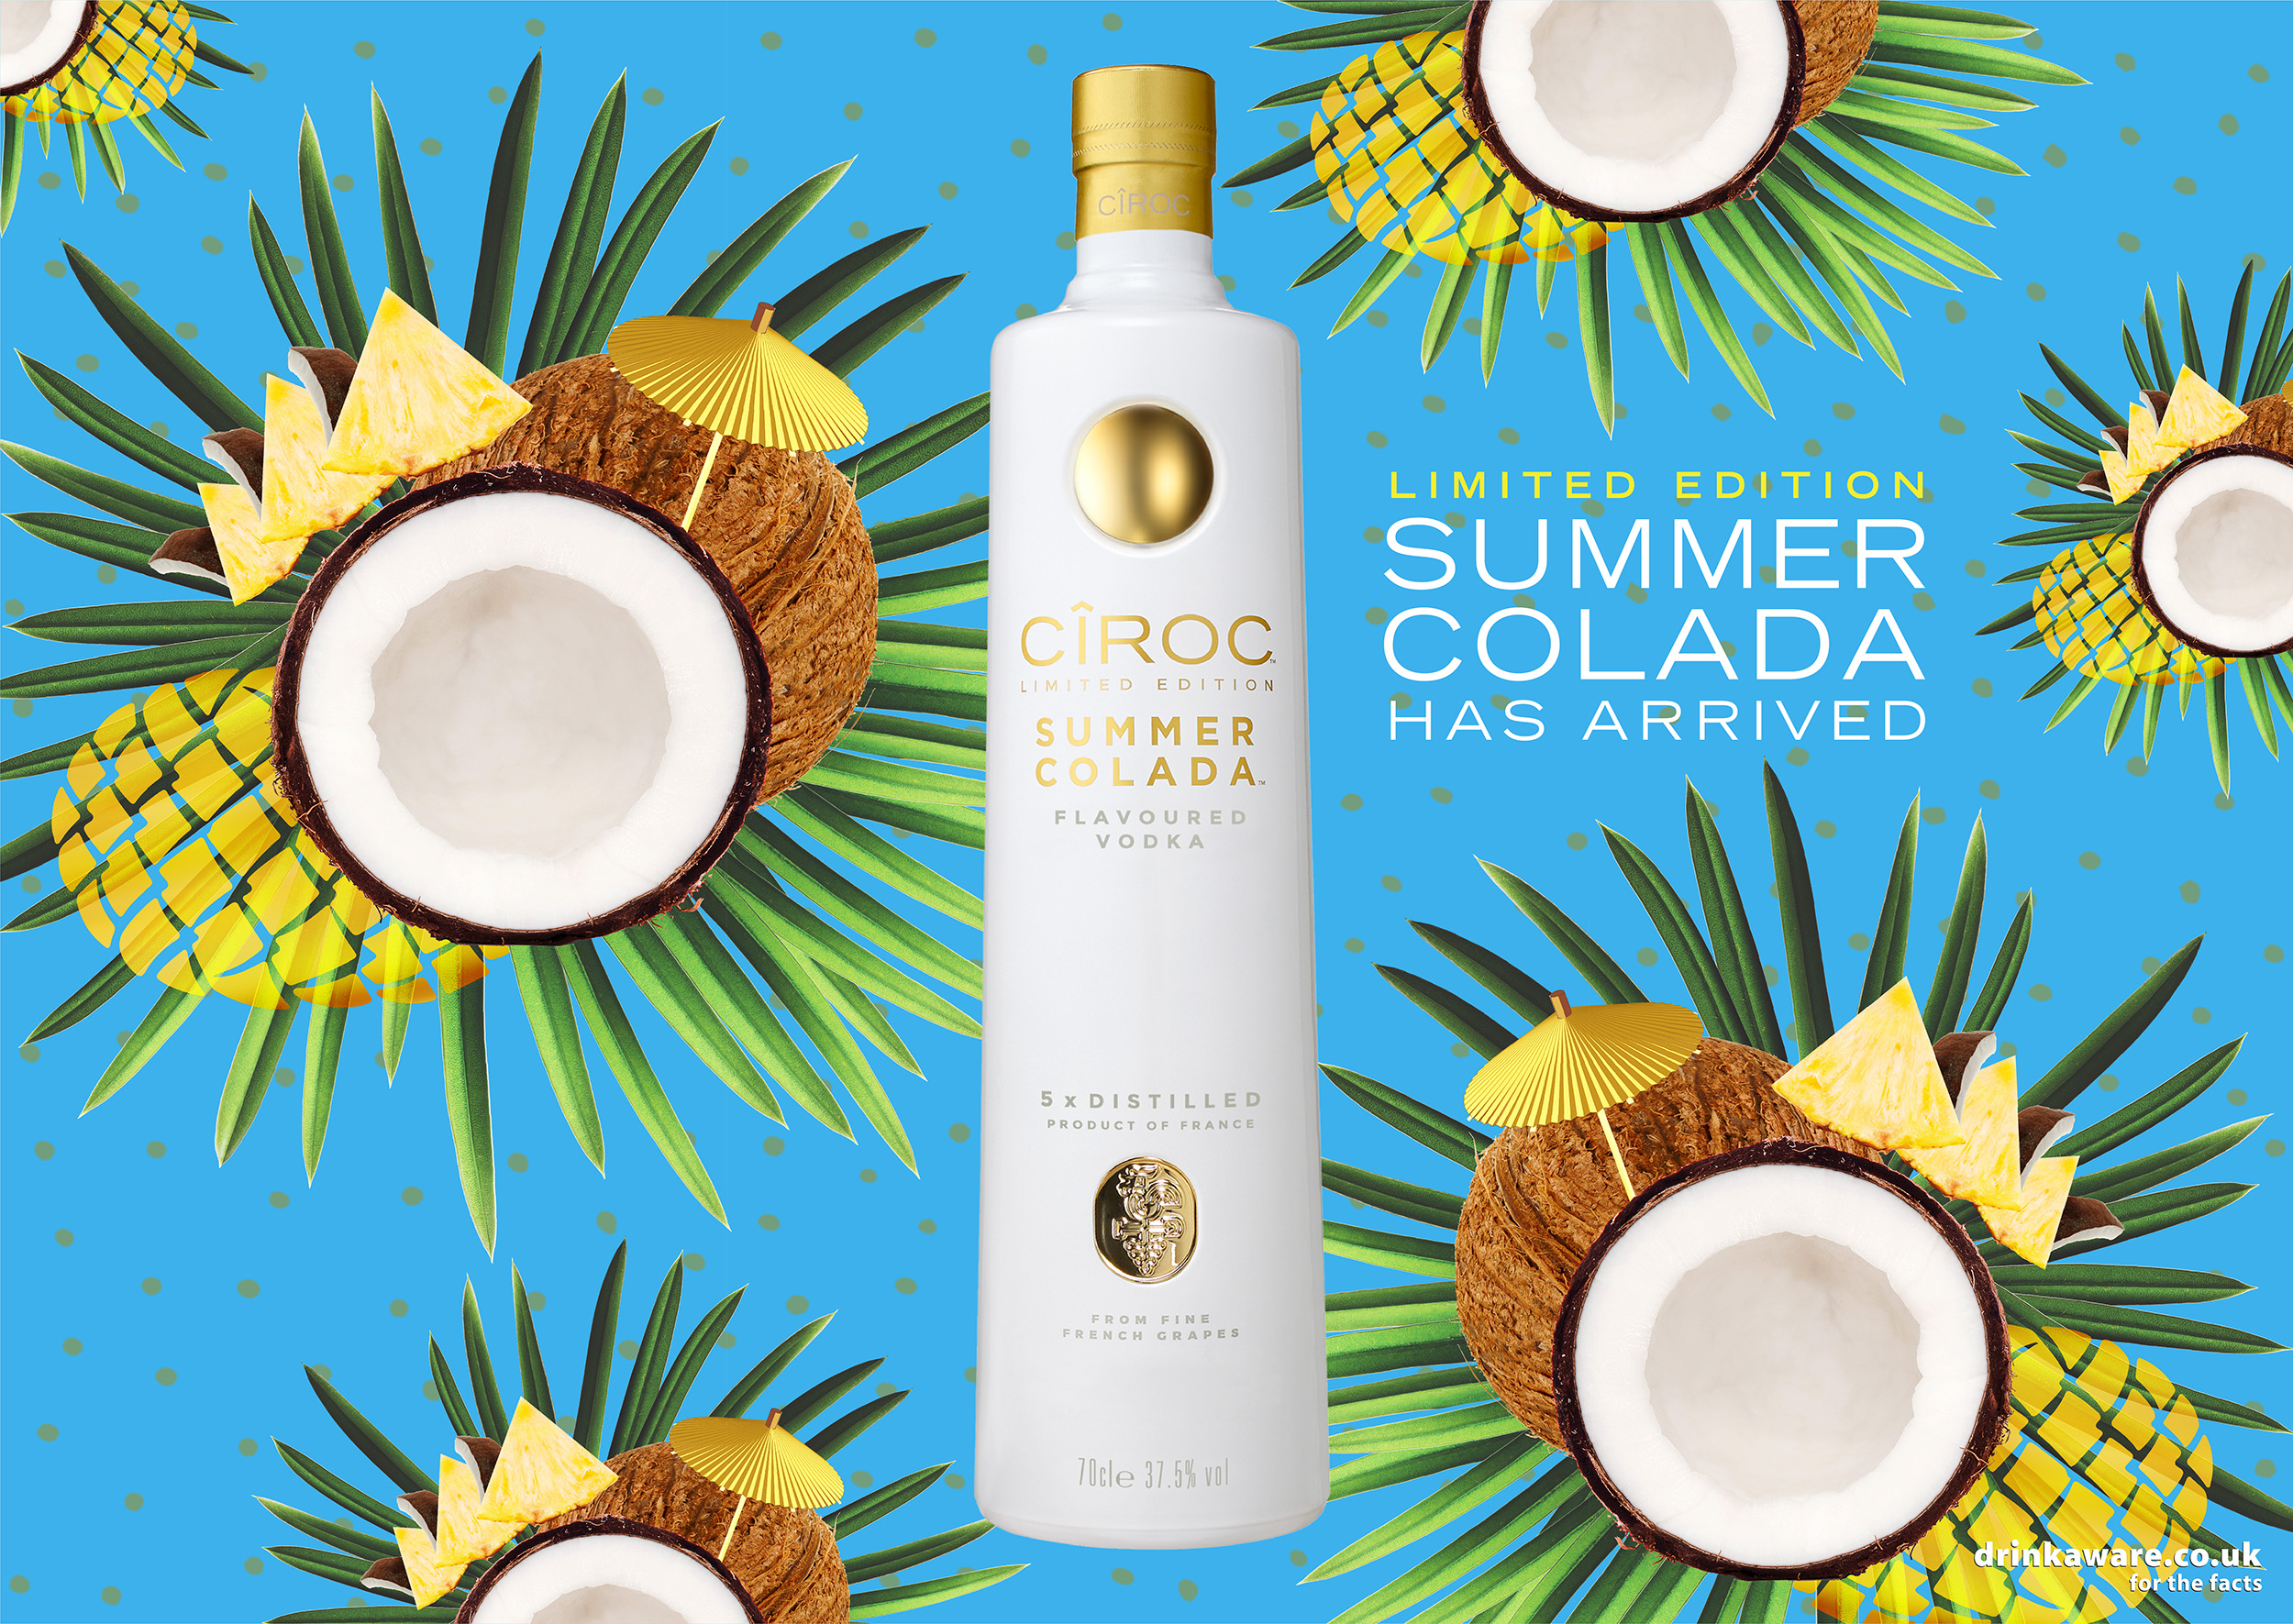 CIROC Summer Colada Key Visual.jpg